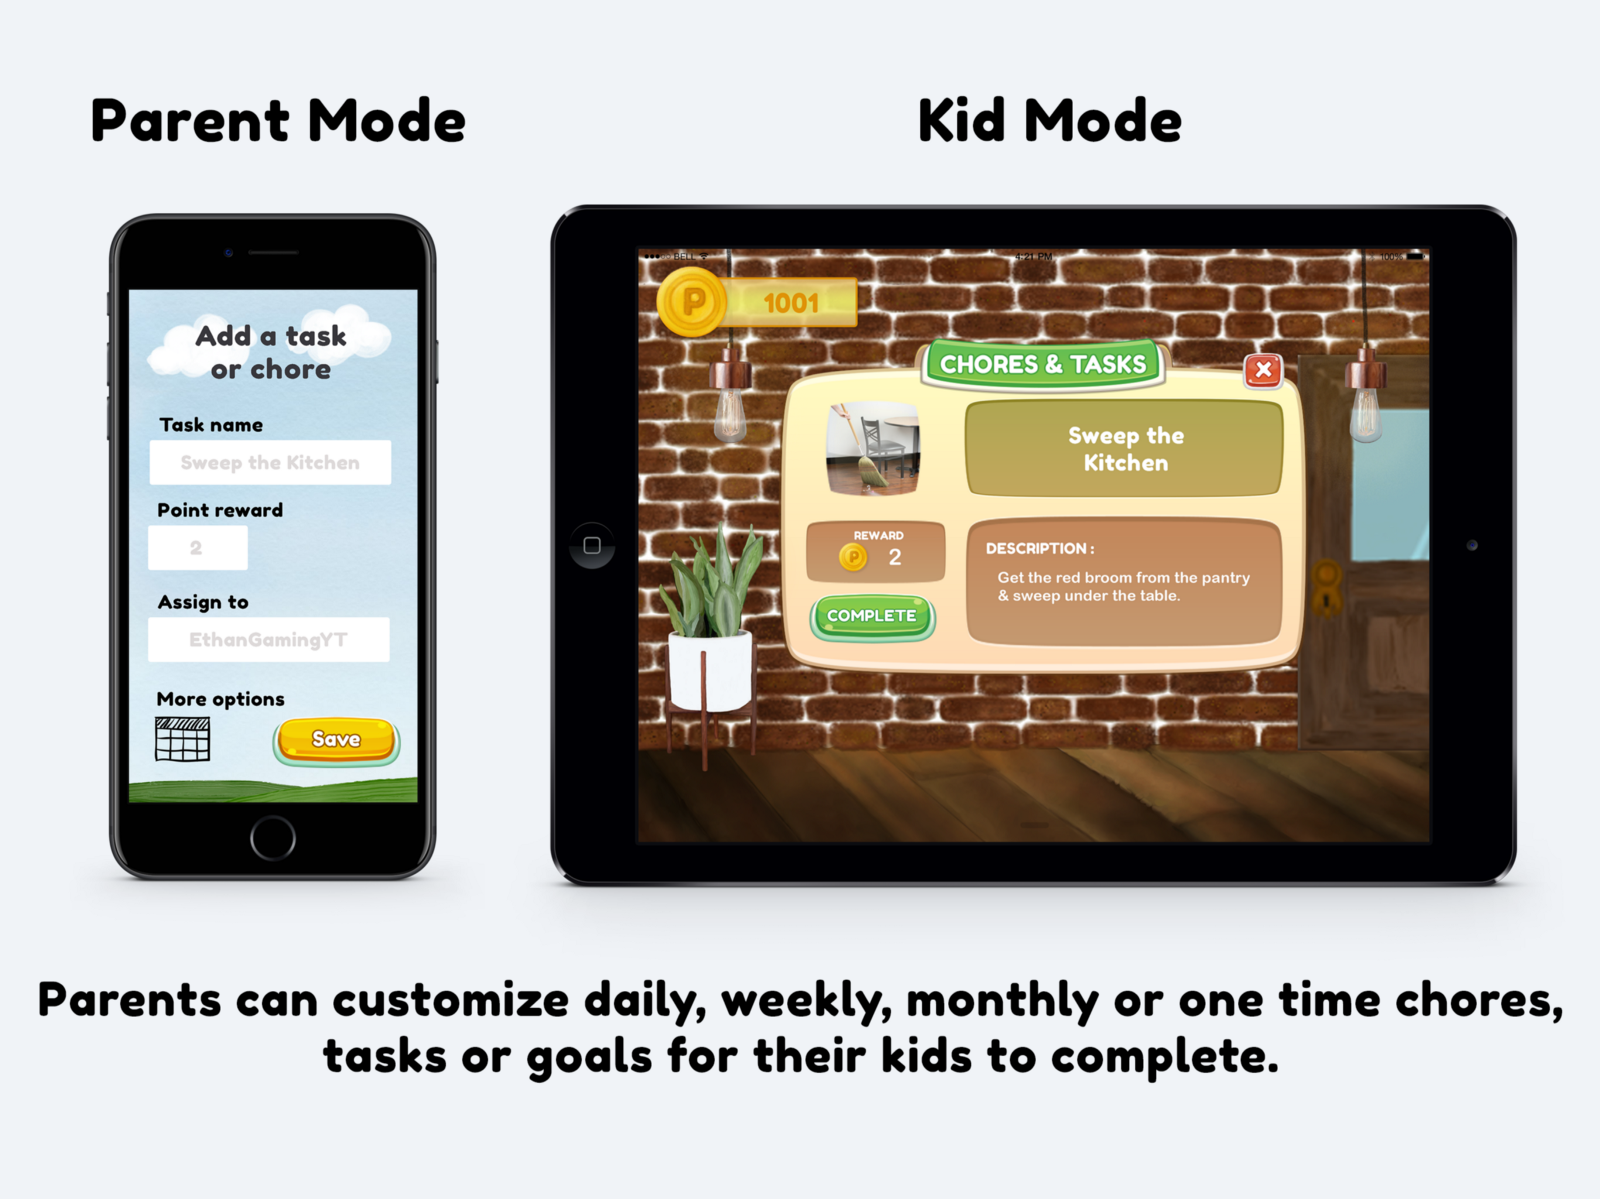 Screen shots of the PopChart Family apps parent and kid chores